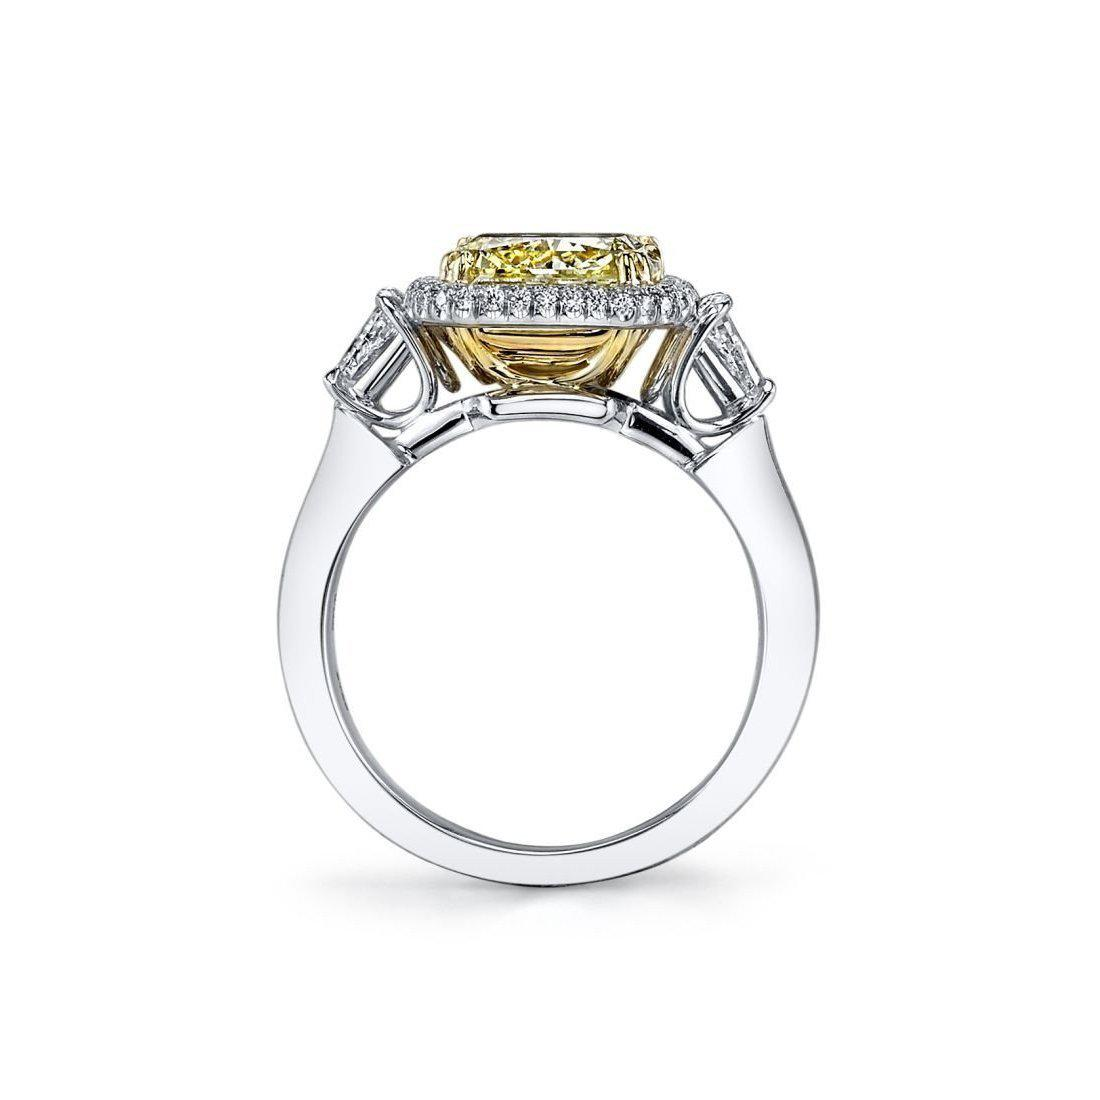 Harry Kotlar Radiant Classico Ring in Metallic